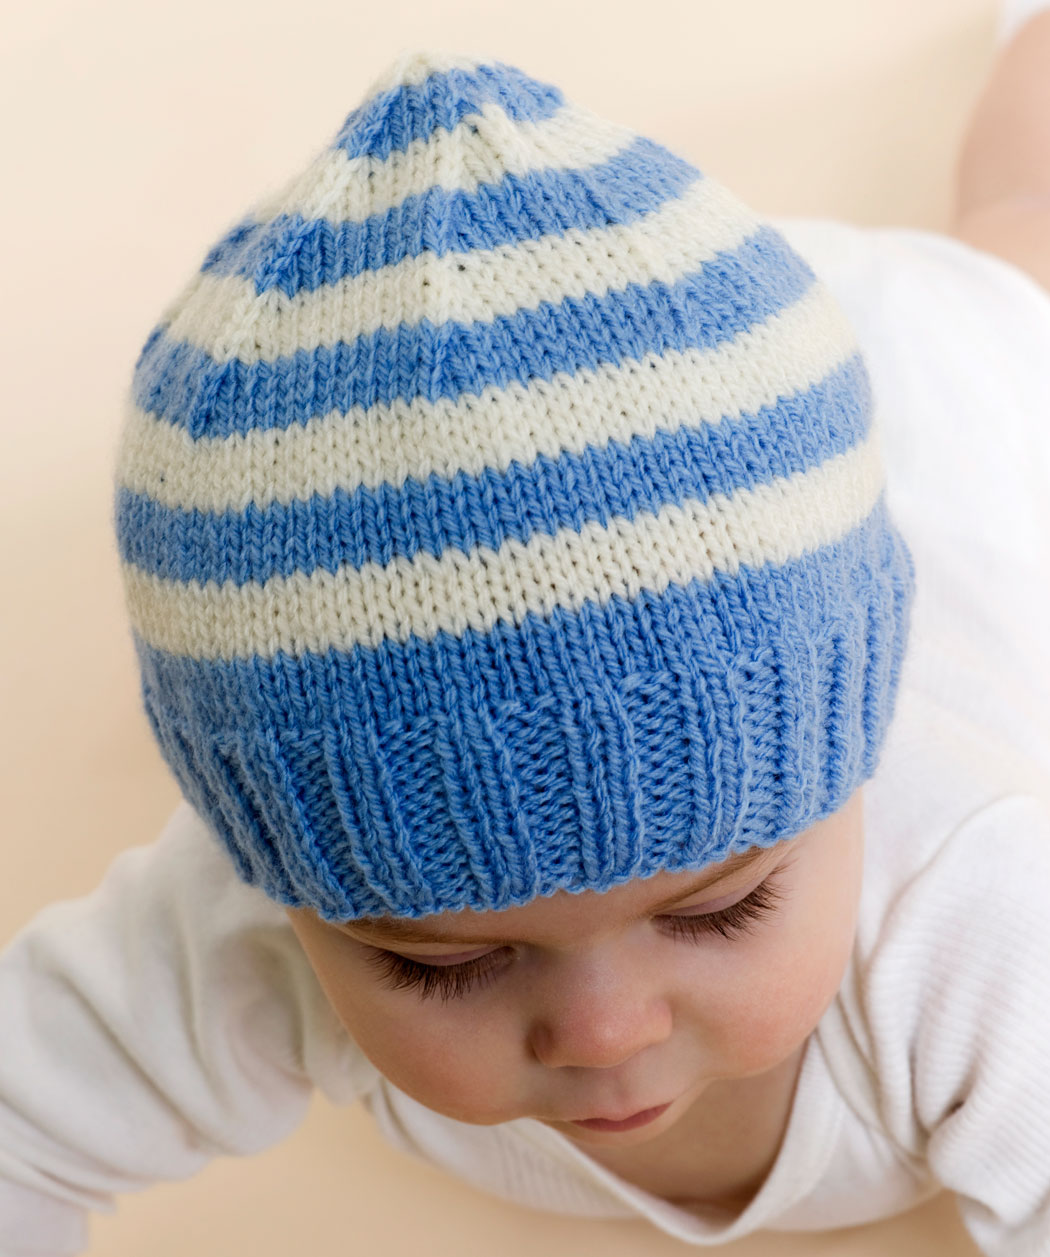 Knitting Caps Patterns : Knitting Hats   Tag Hats